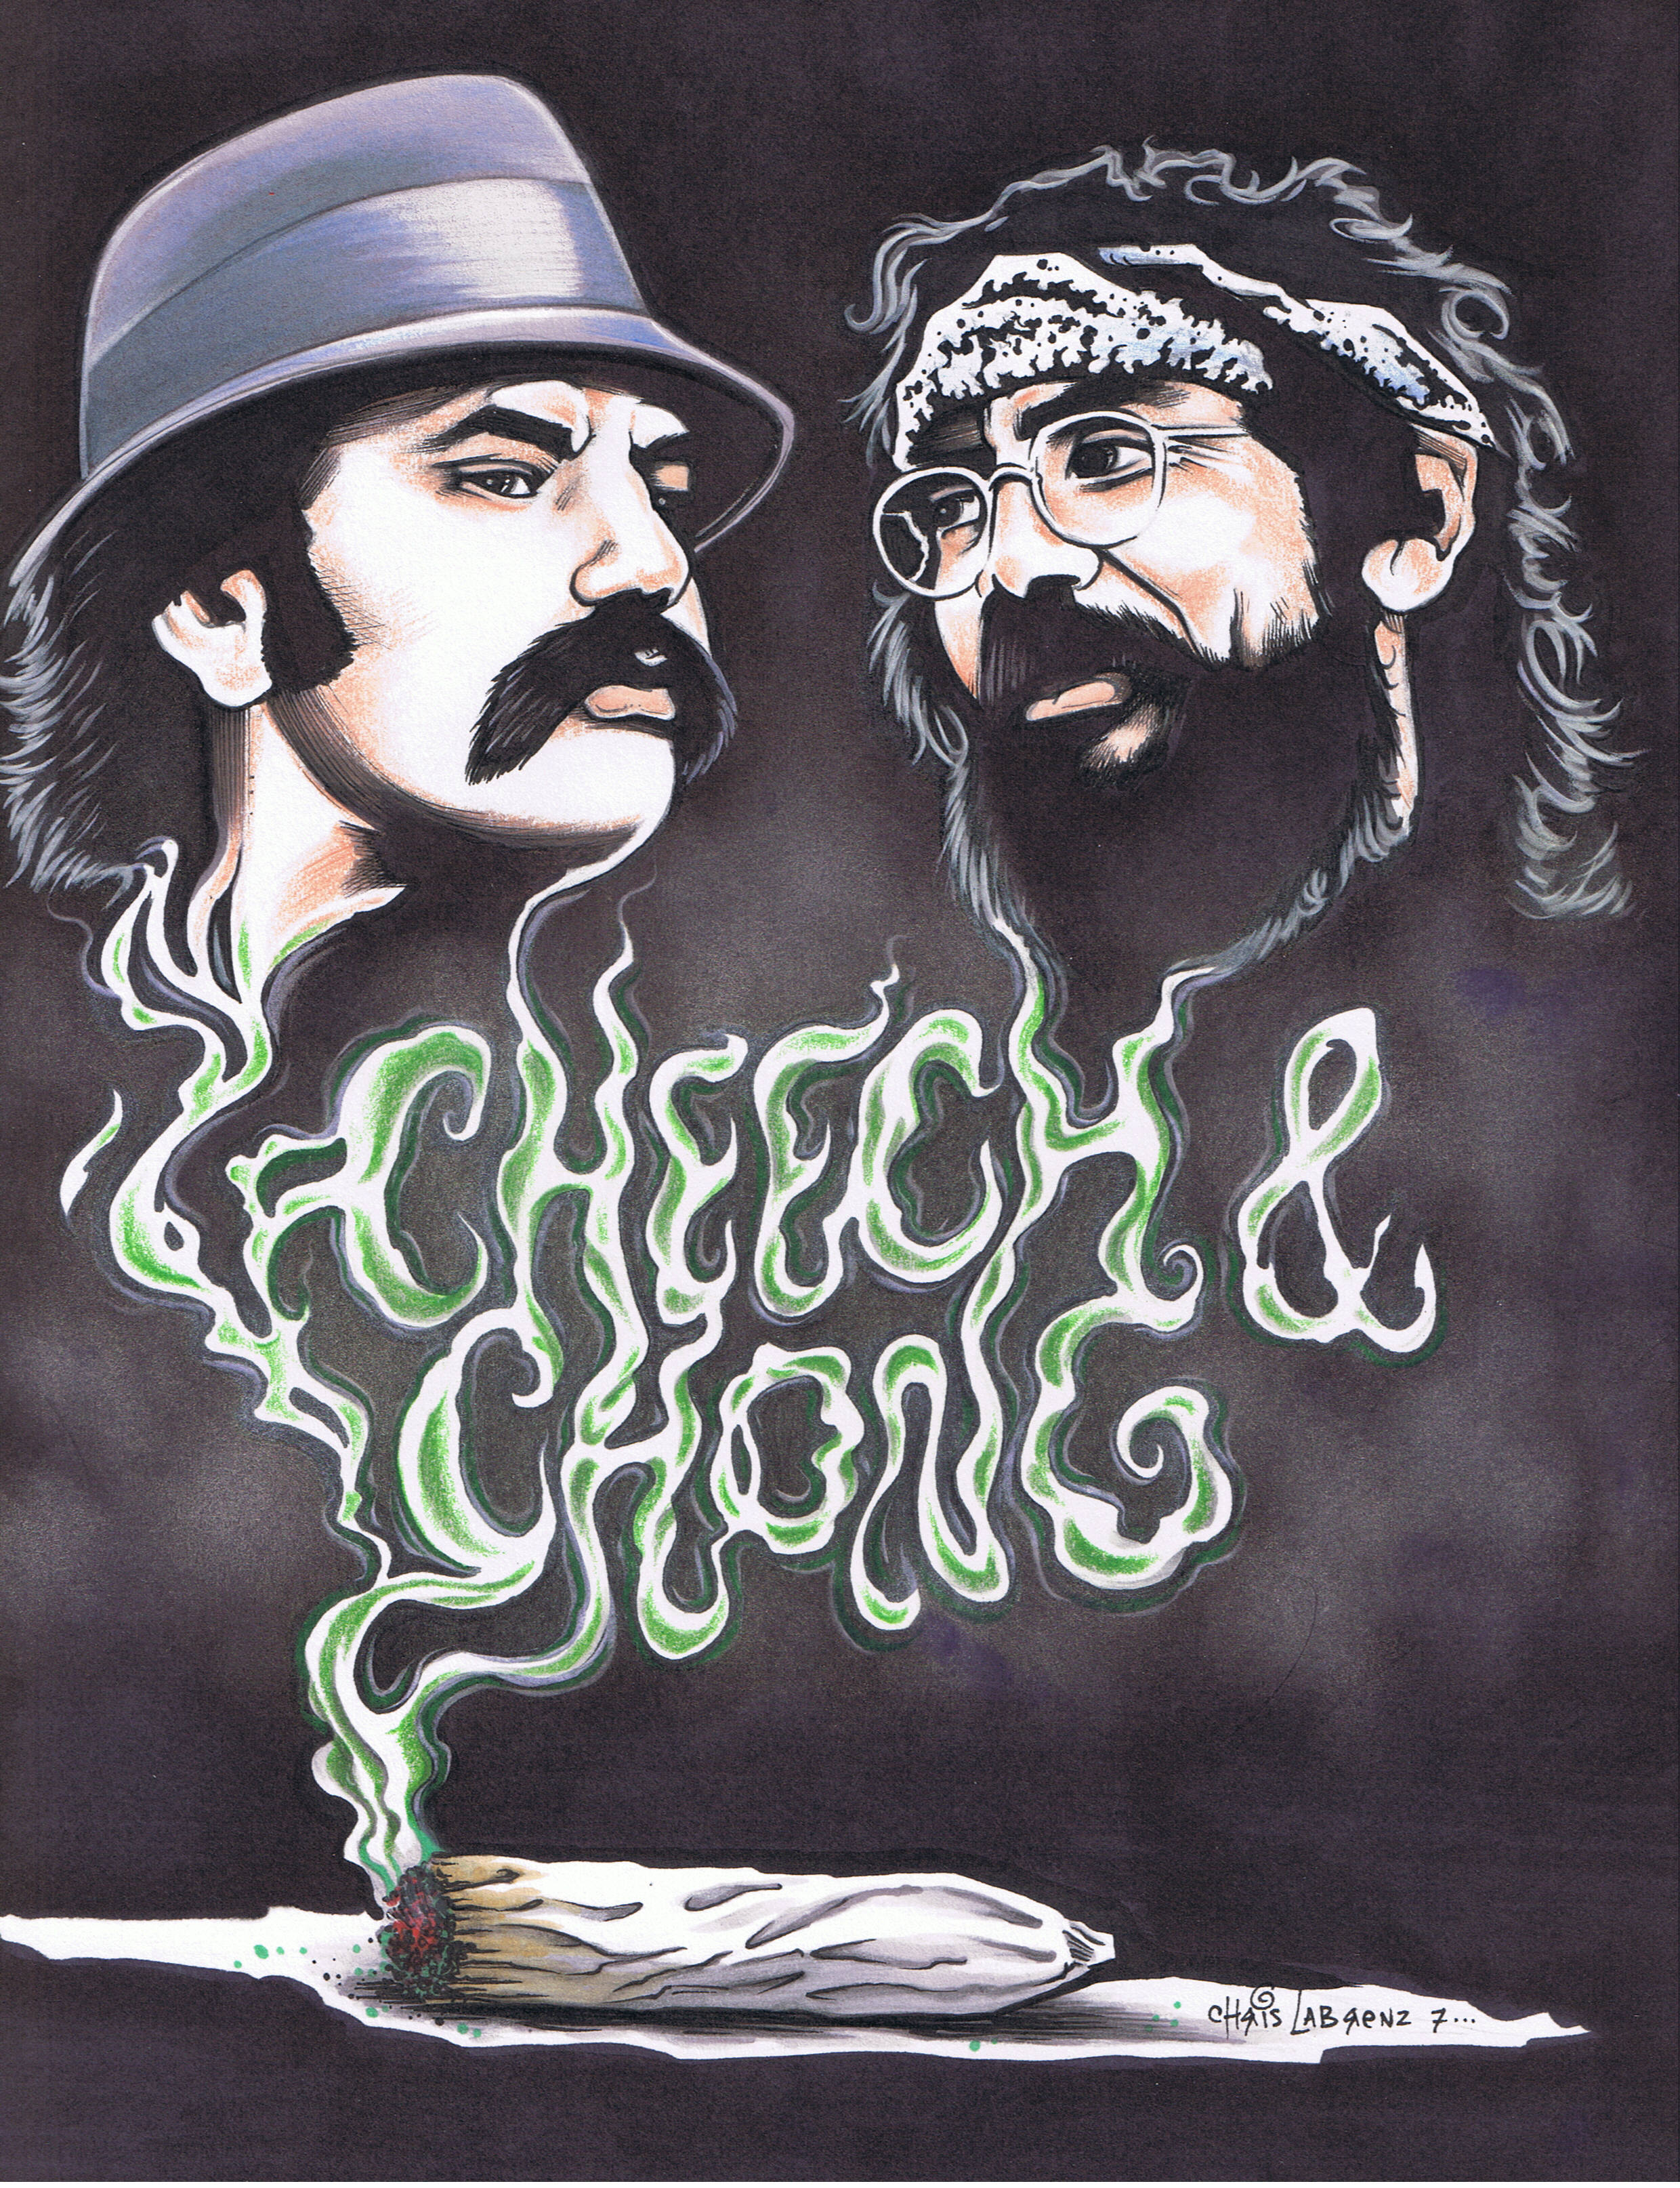 Cheech And Chong Backgrounds, Compatible - PC, Mobile, Gadgets| 2480x3229 px